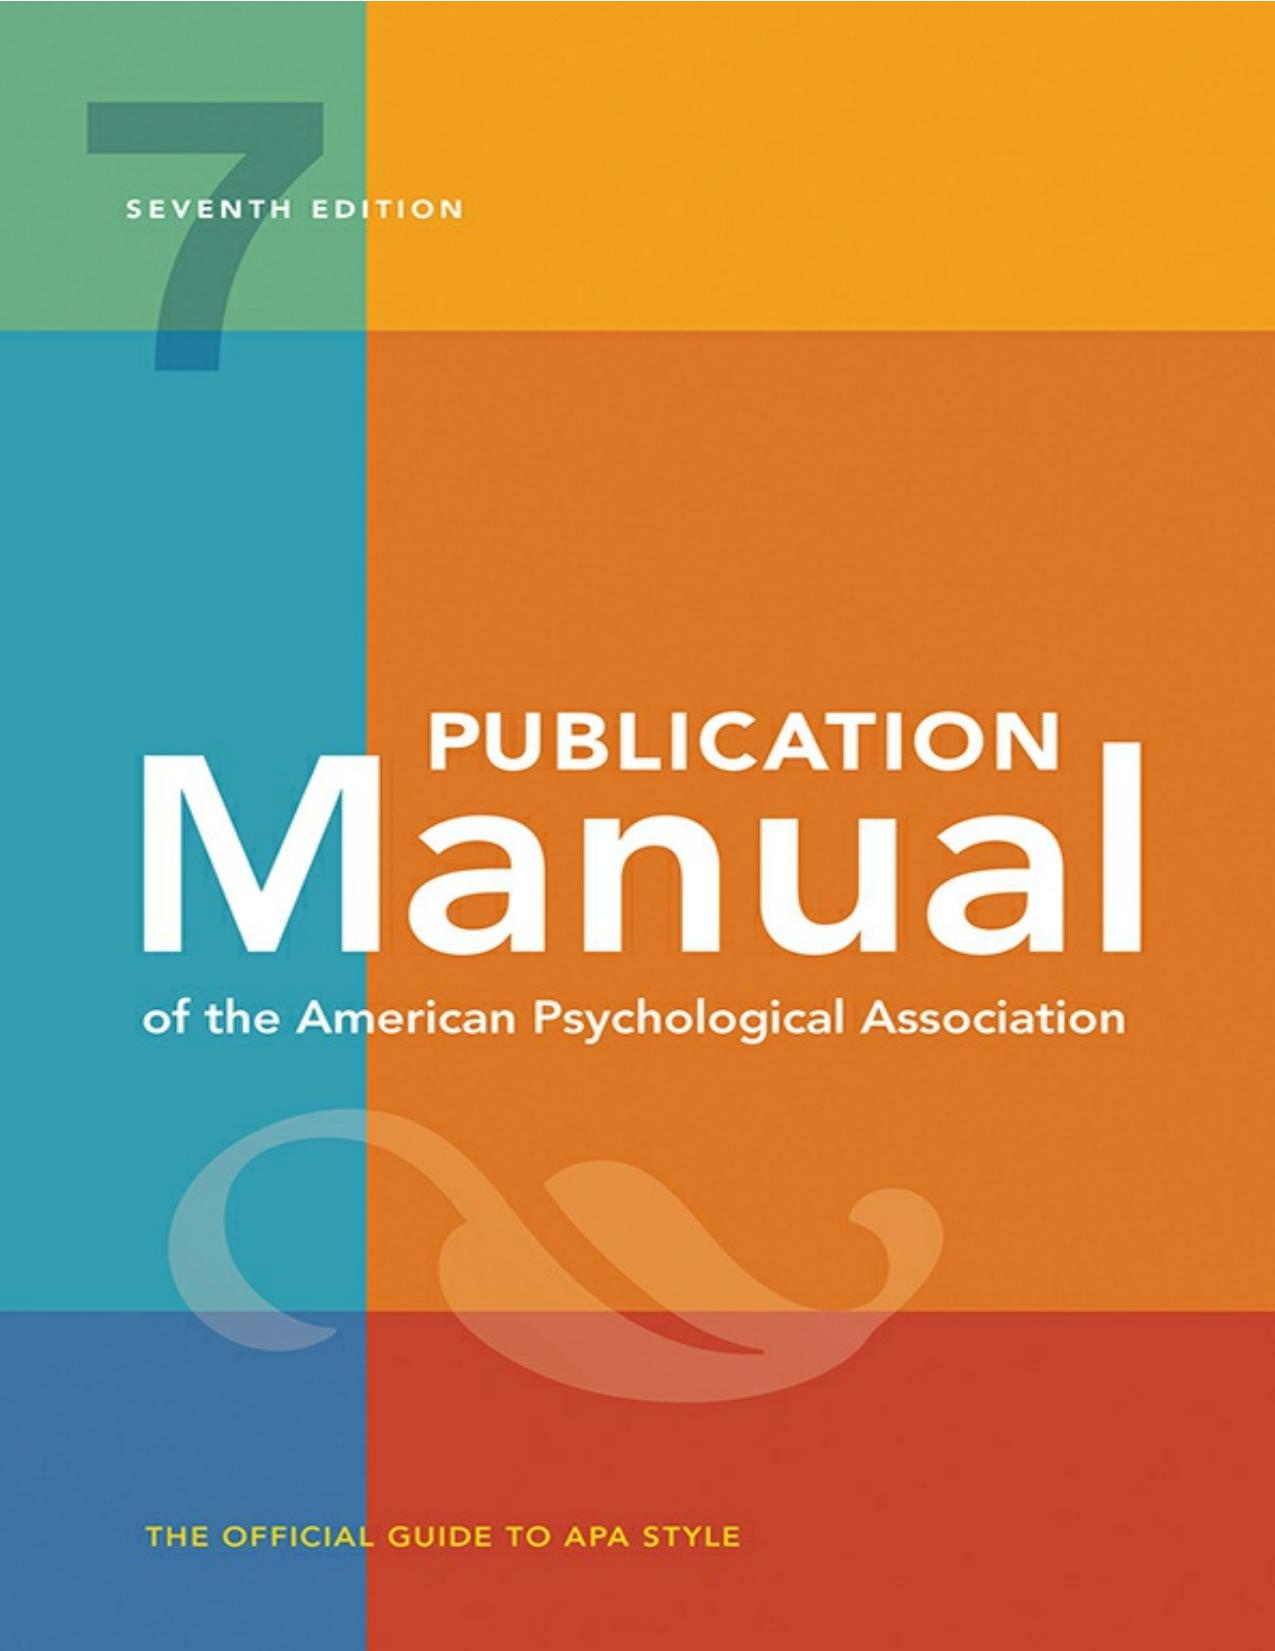 image of the APA publication manual cover